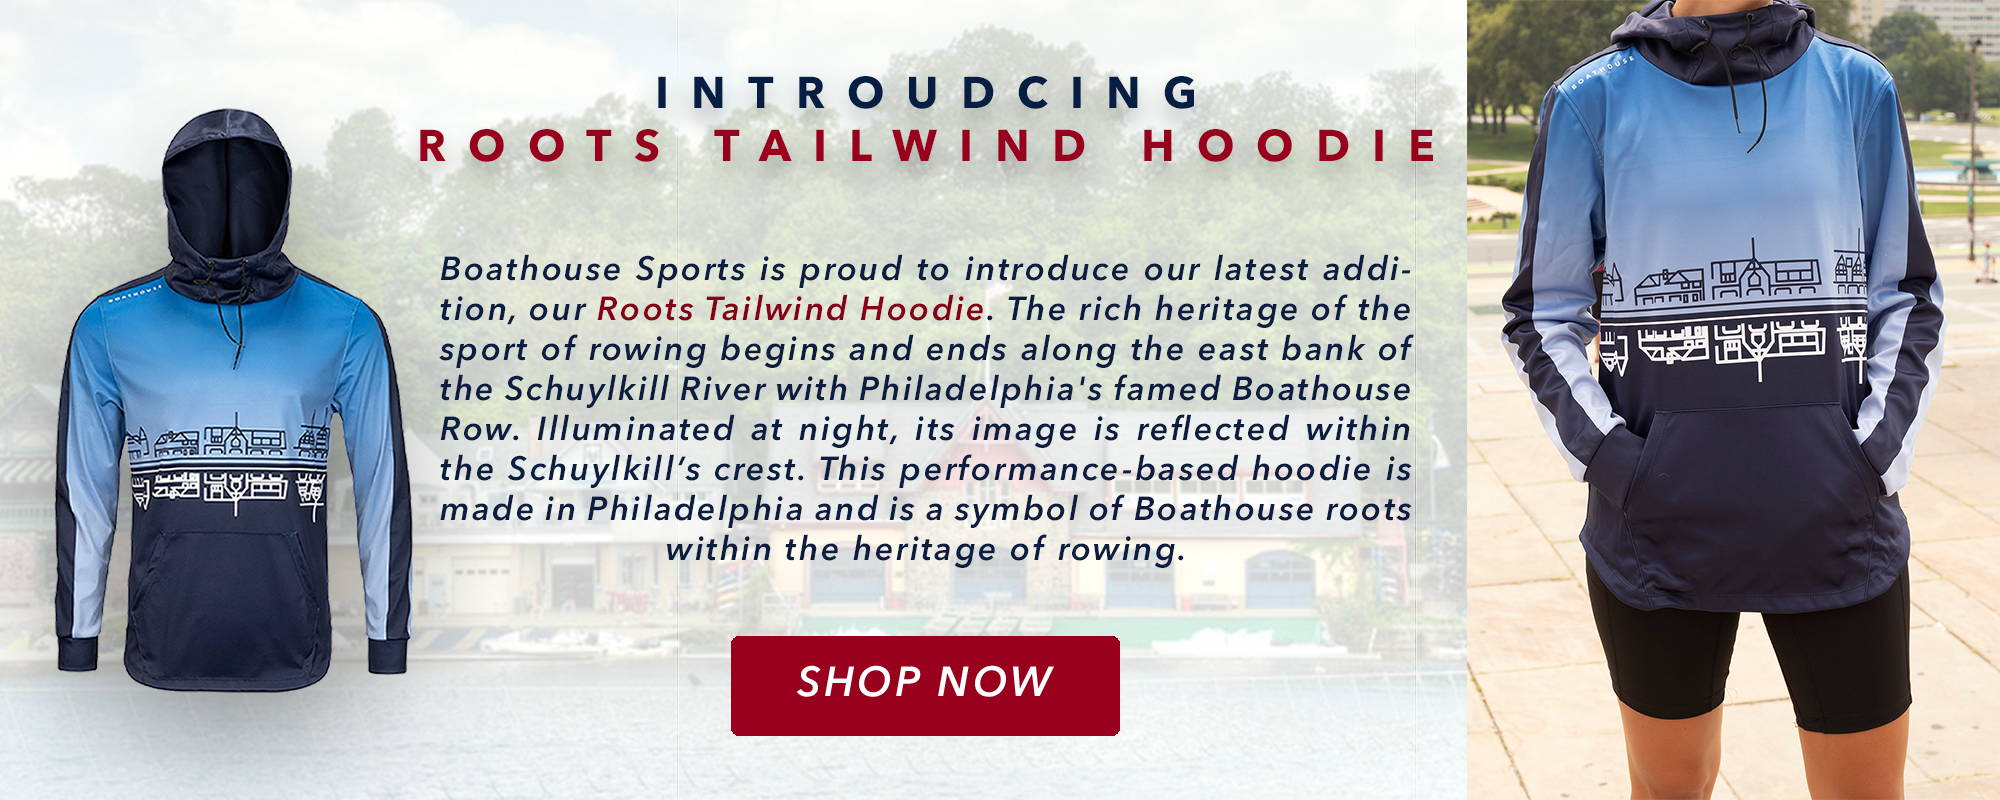 Roots Tailwind